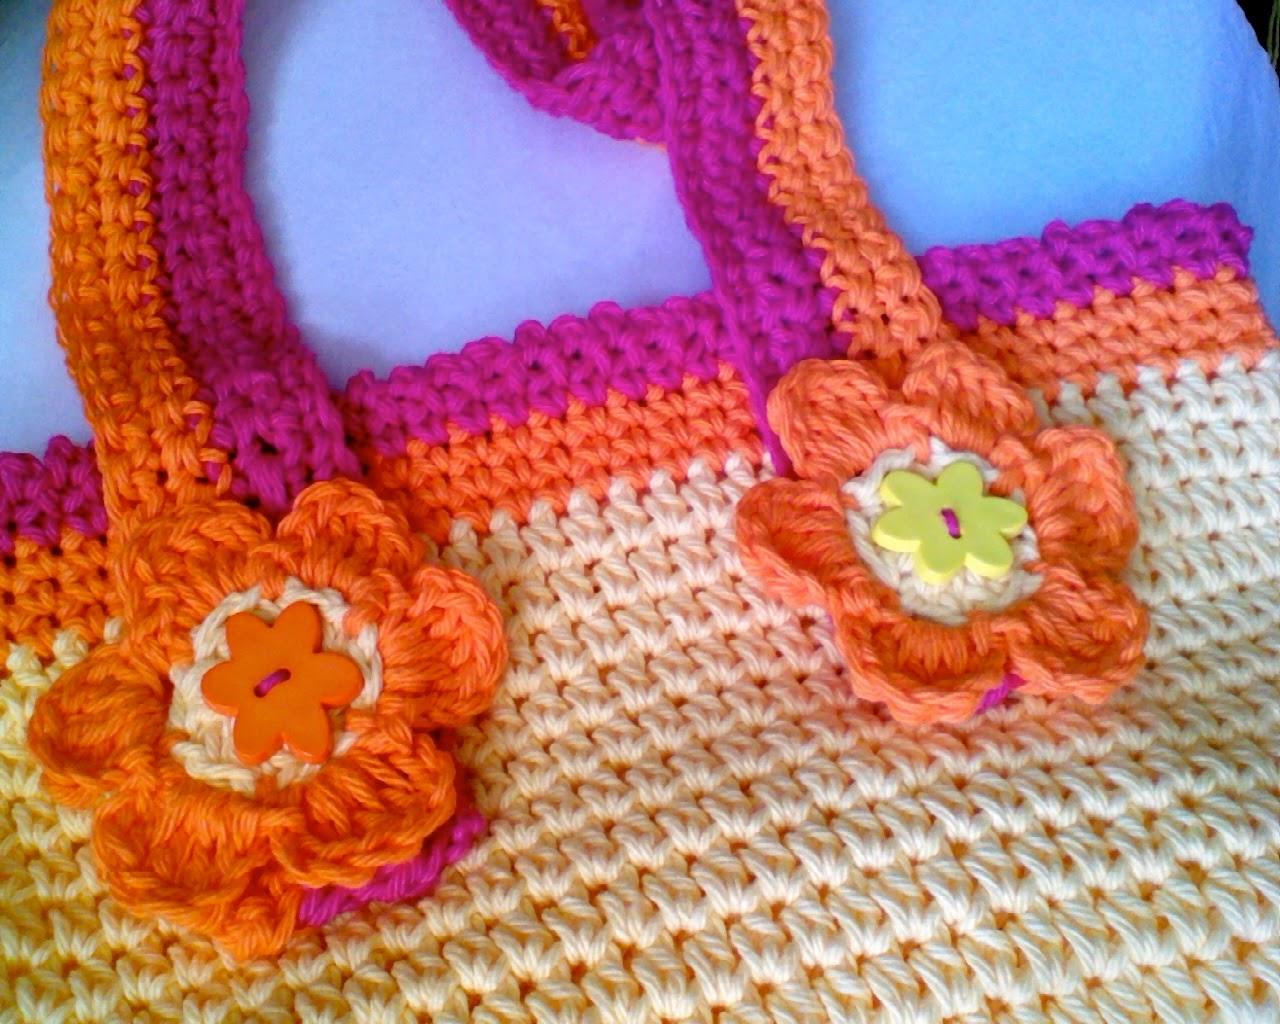 ... Cottage Kids: New Free Pattern Coming Soon! Crochet Beach Bag